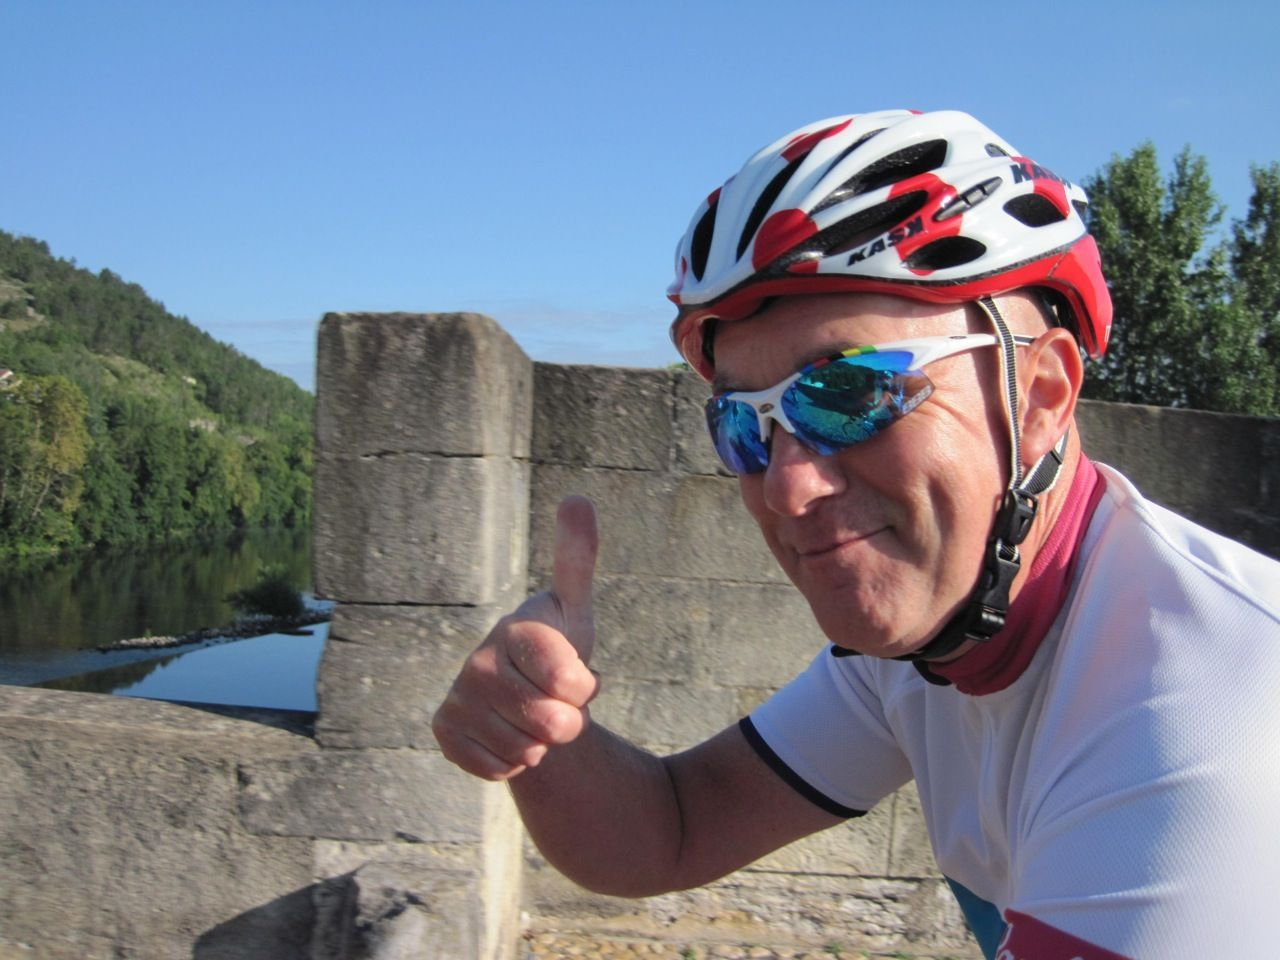 _Staff.348.18296.jpg - France - Haute Dordogne - Guided Road Cycling Holiday - Road Cycling